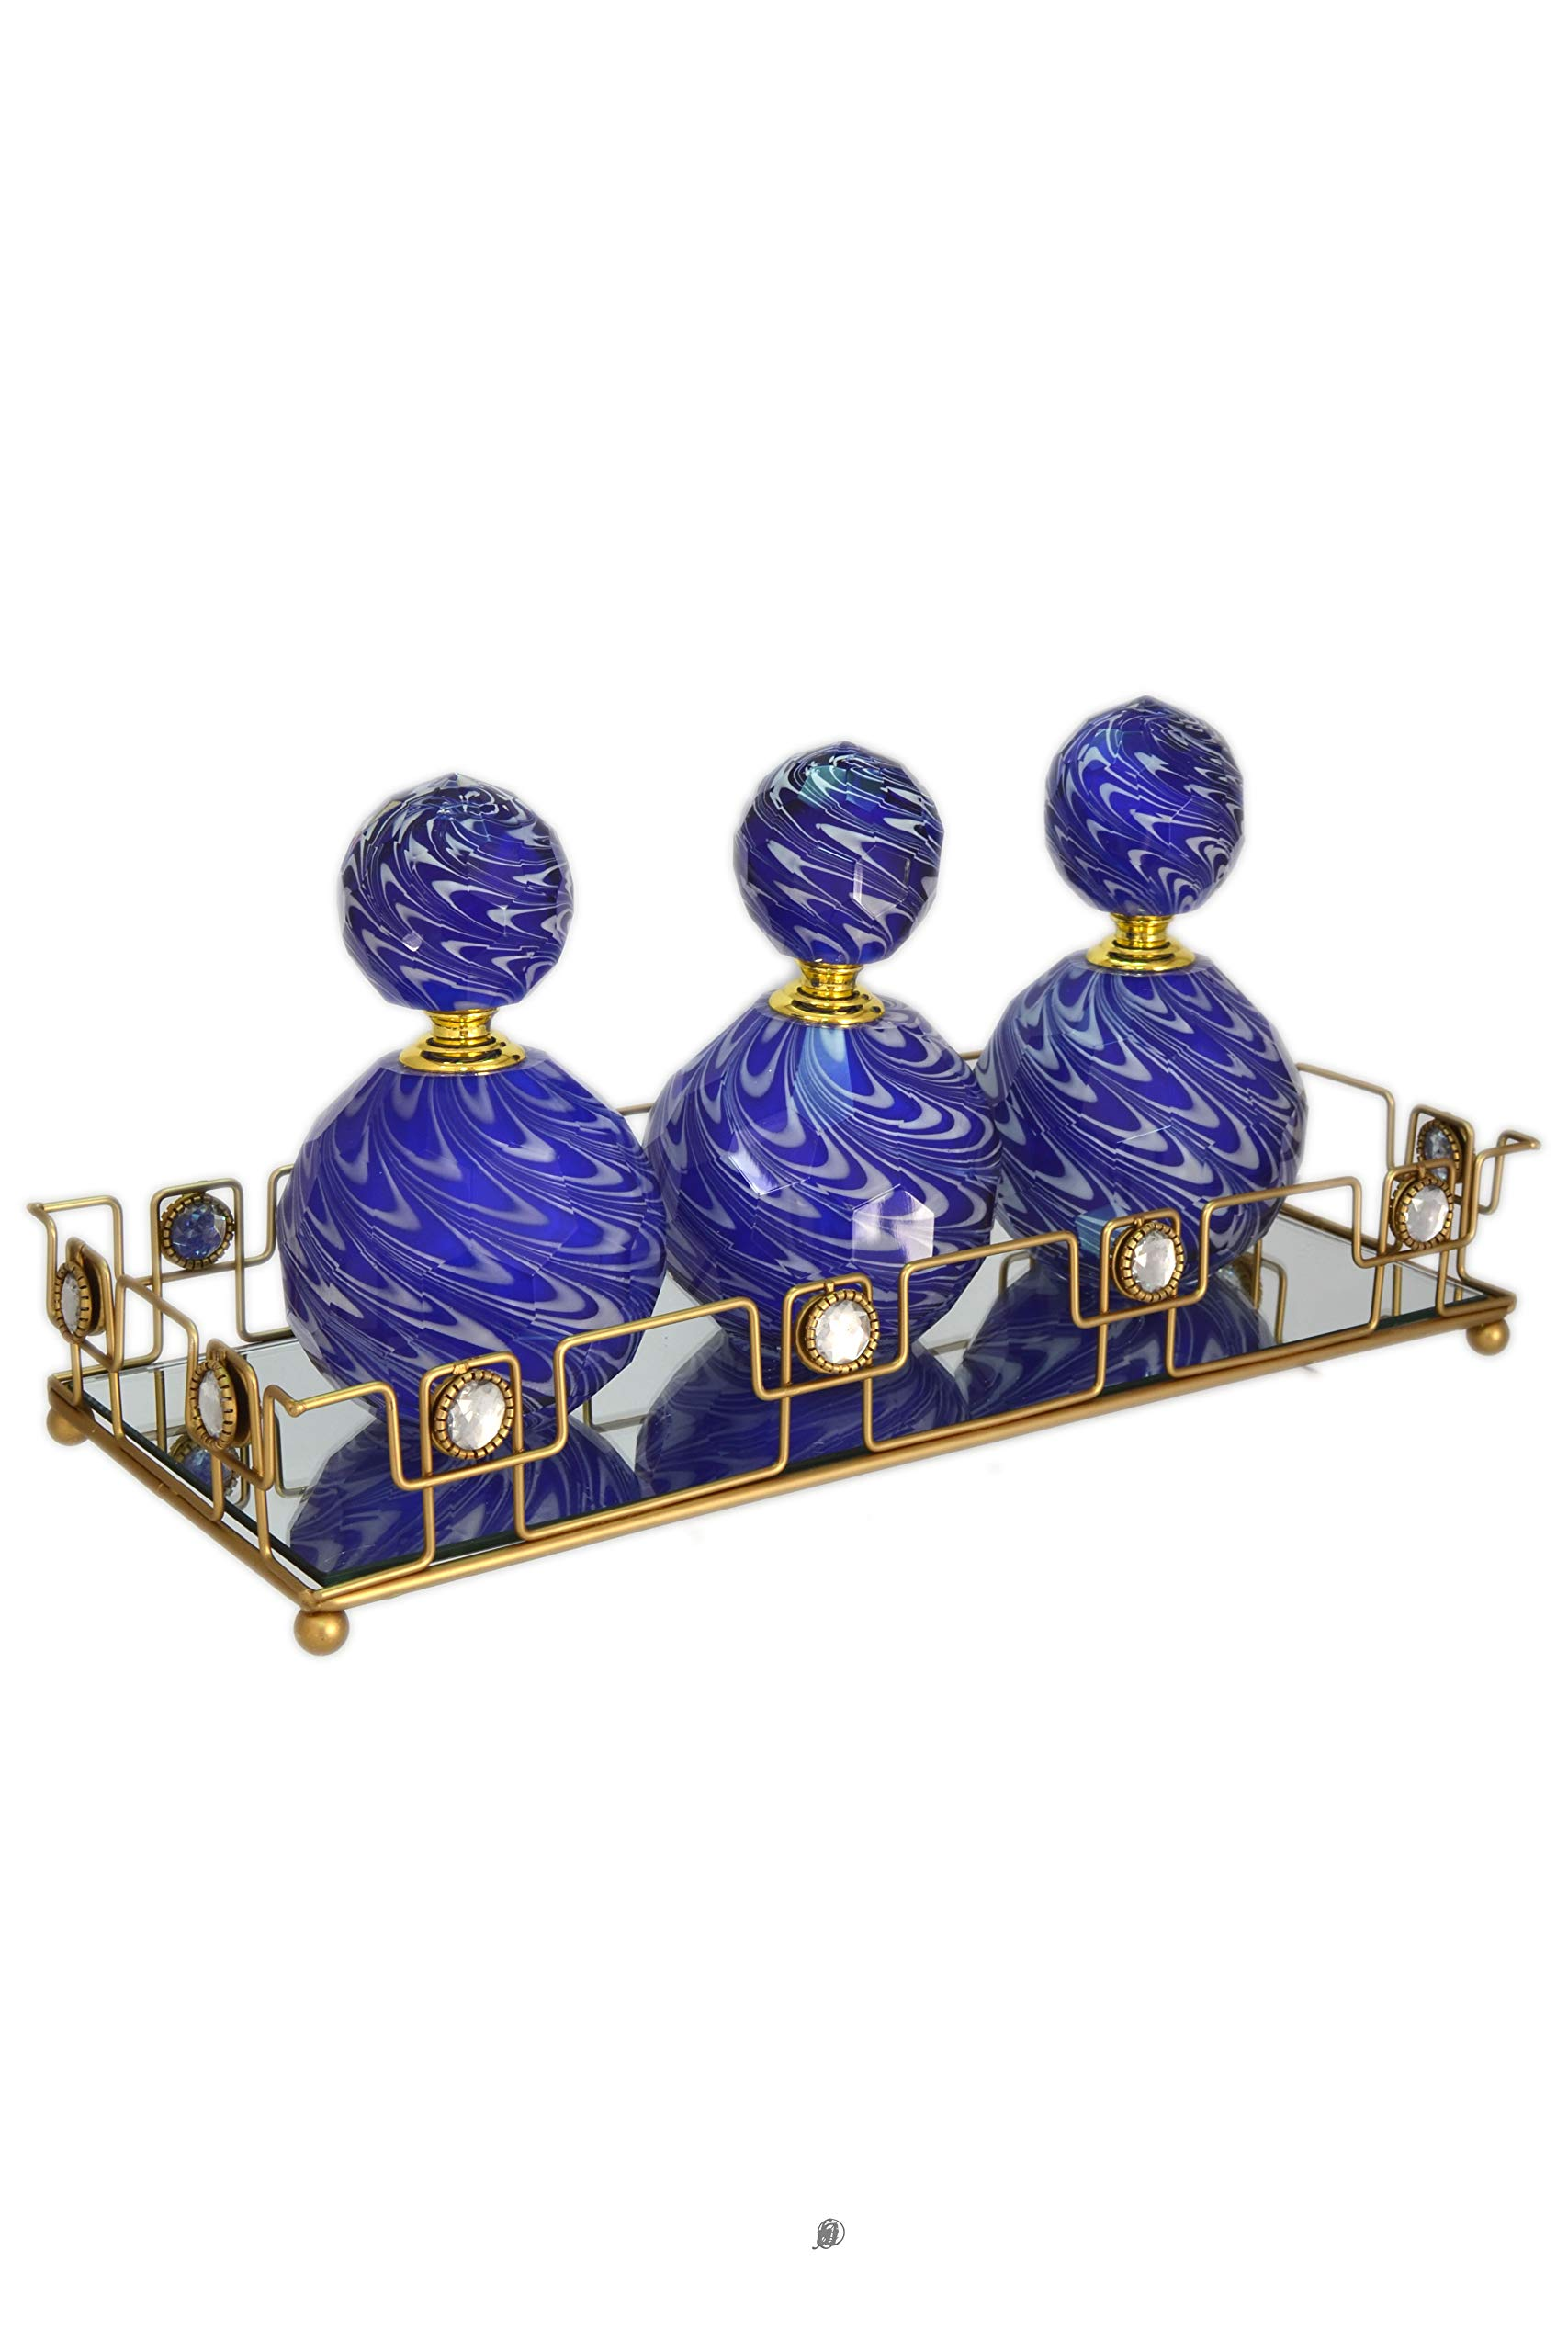 American Chateau 3 Cased Crystal Perfume Bottles on Gold Metal Frame Mirror Table Vanity Tray Set